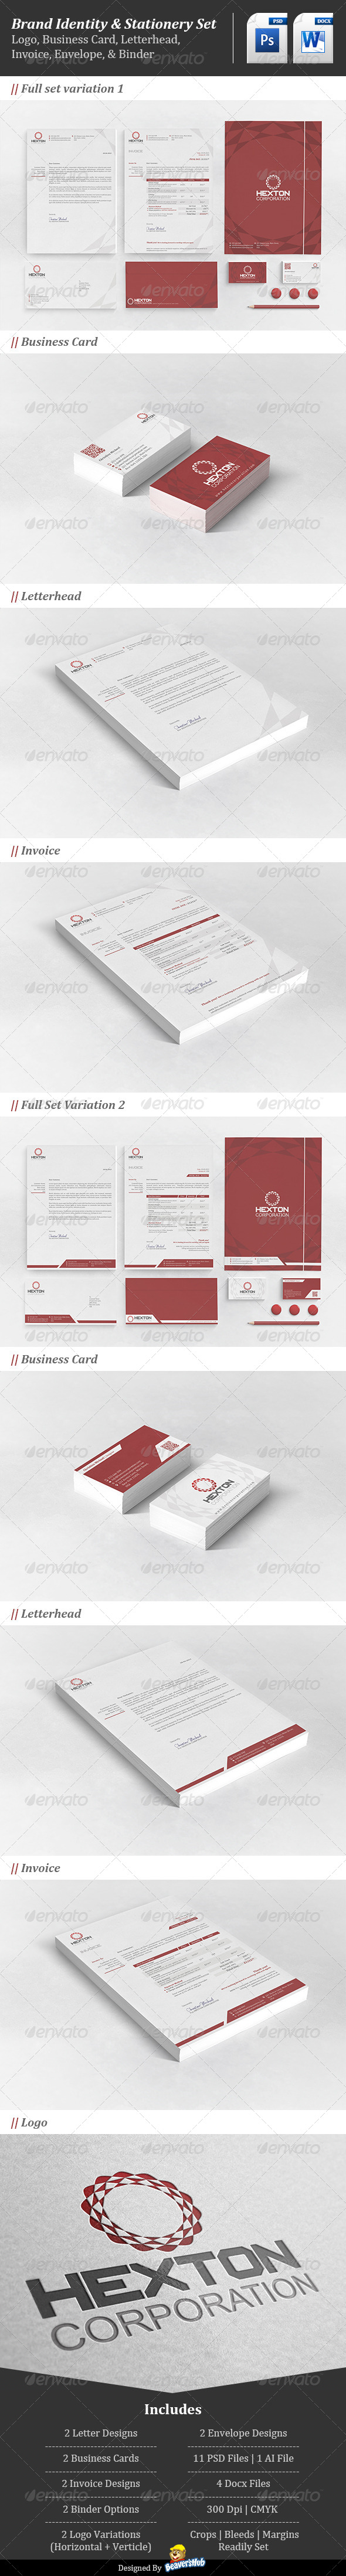 GraphicRiver Corporate Brand Identity Hexton Corporation 4620579